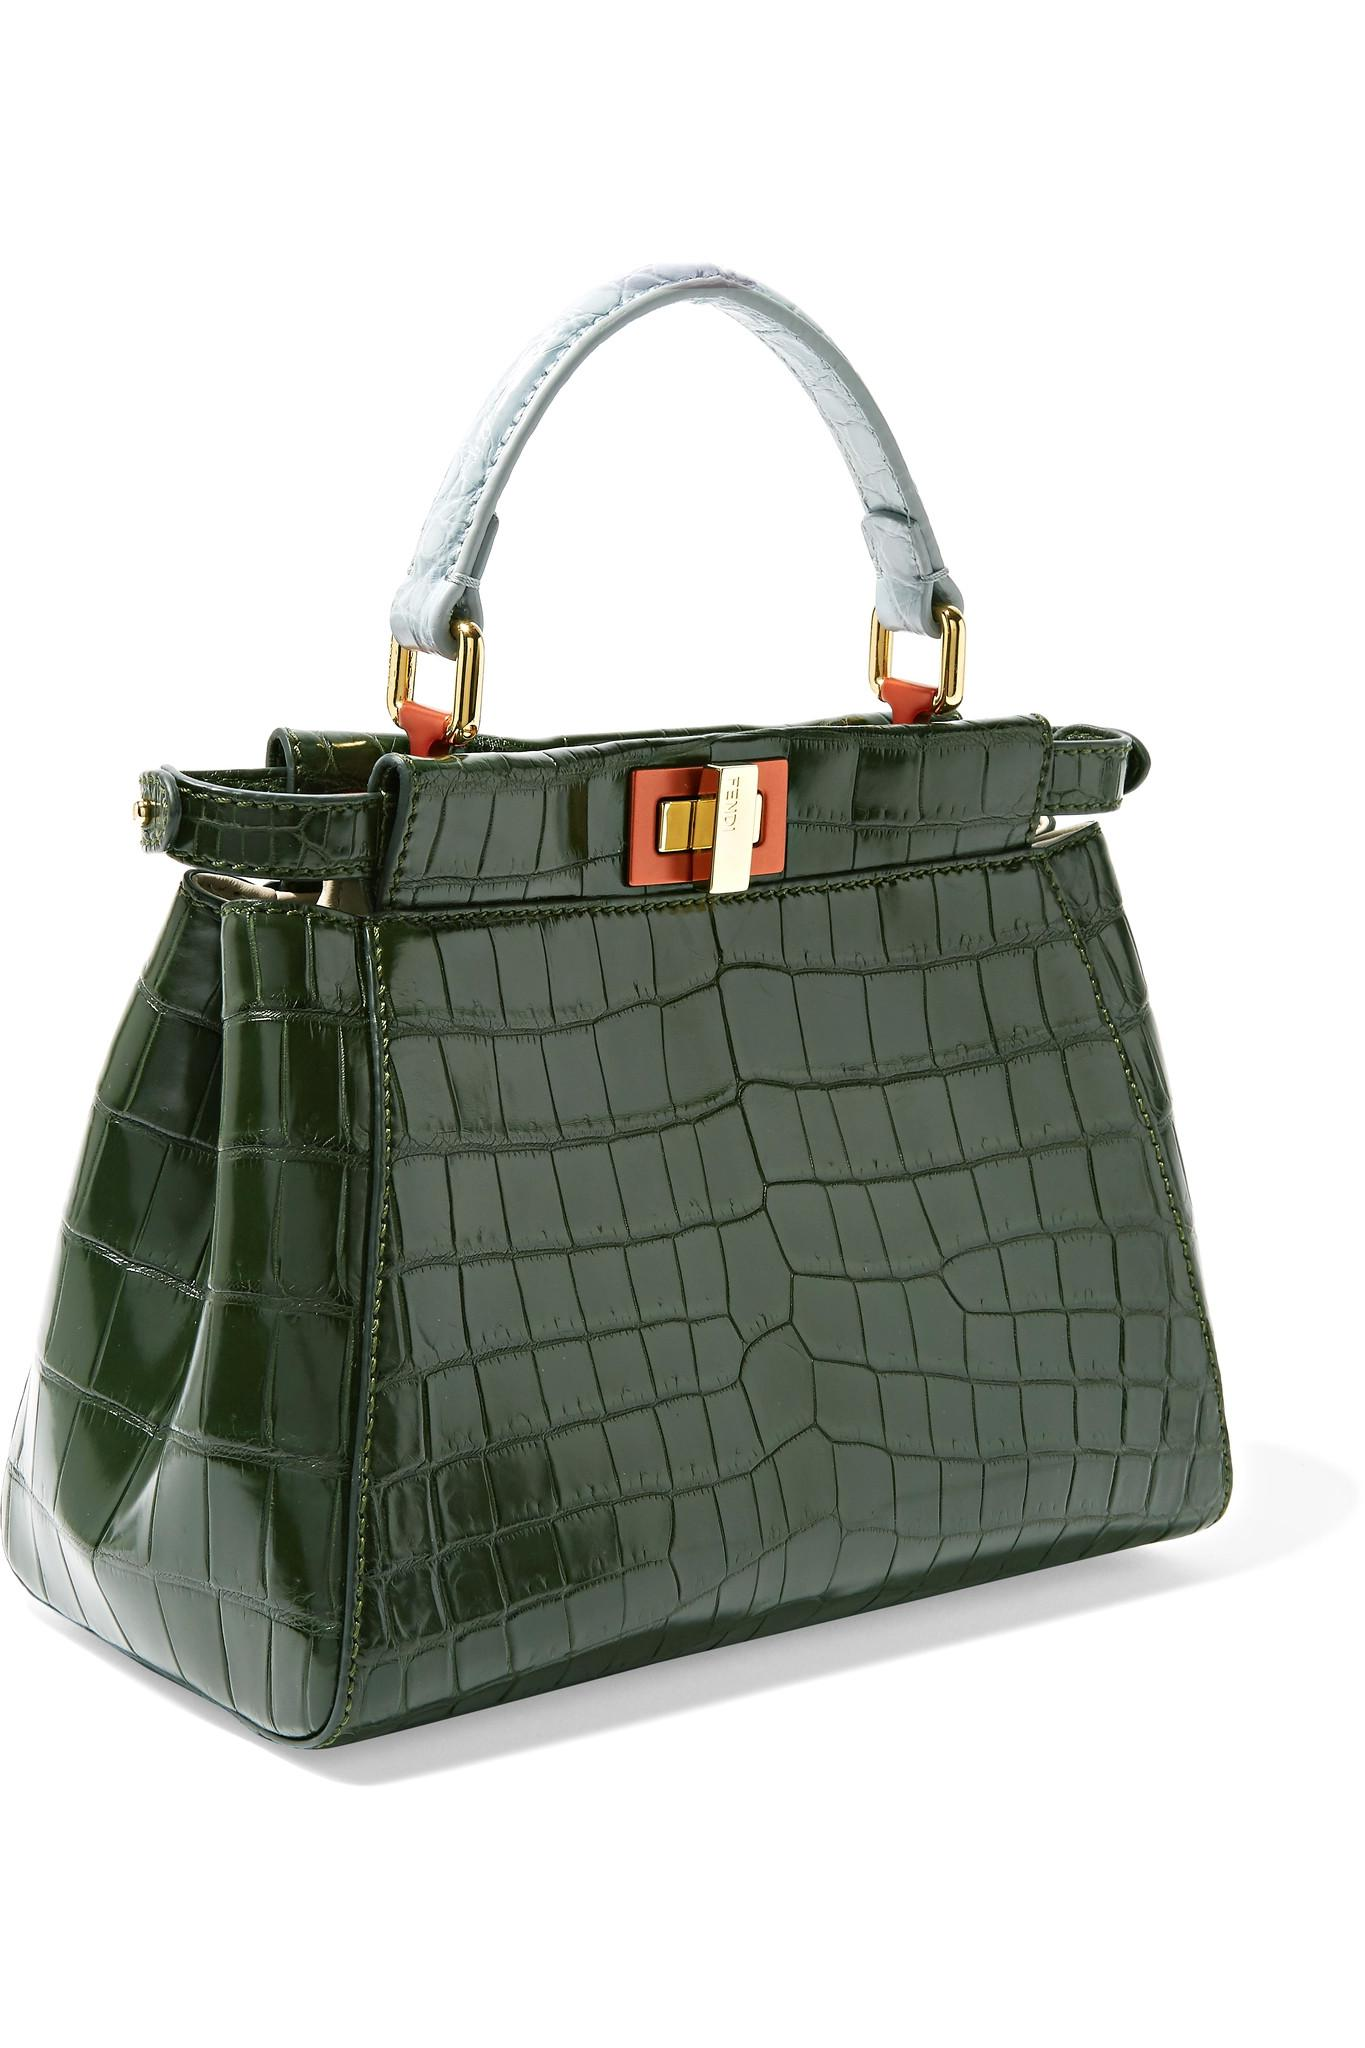 0992132a11e0 Fendi Peekaboo Mini Crocodile Shoulder Bag in Green - Lyst